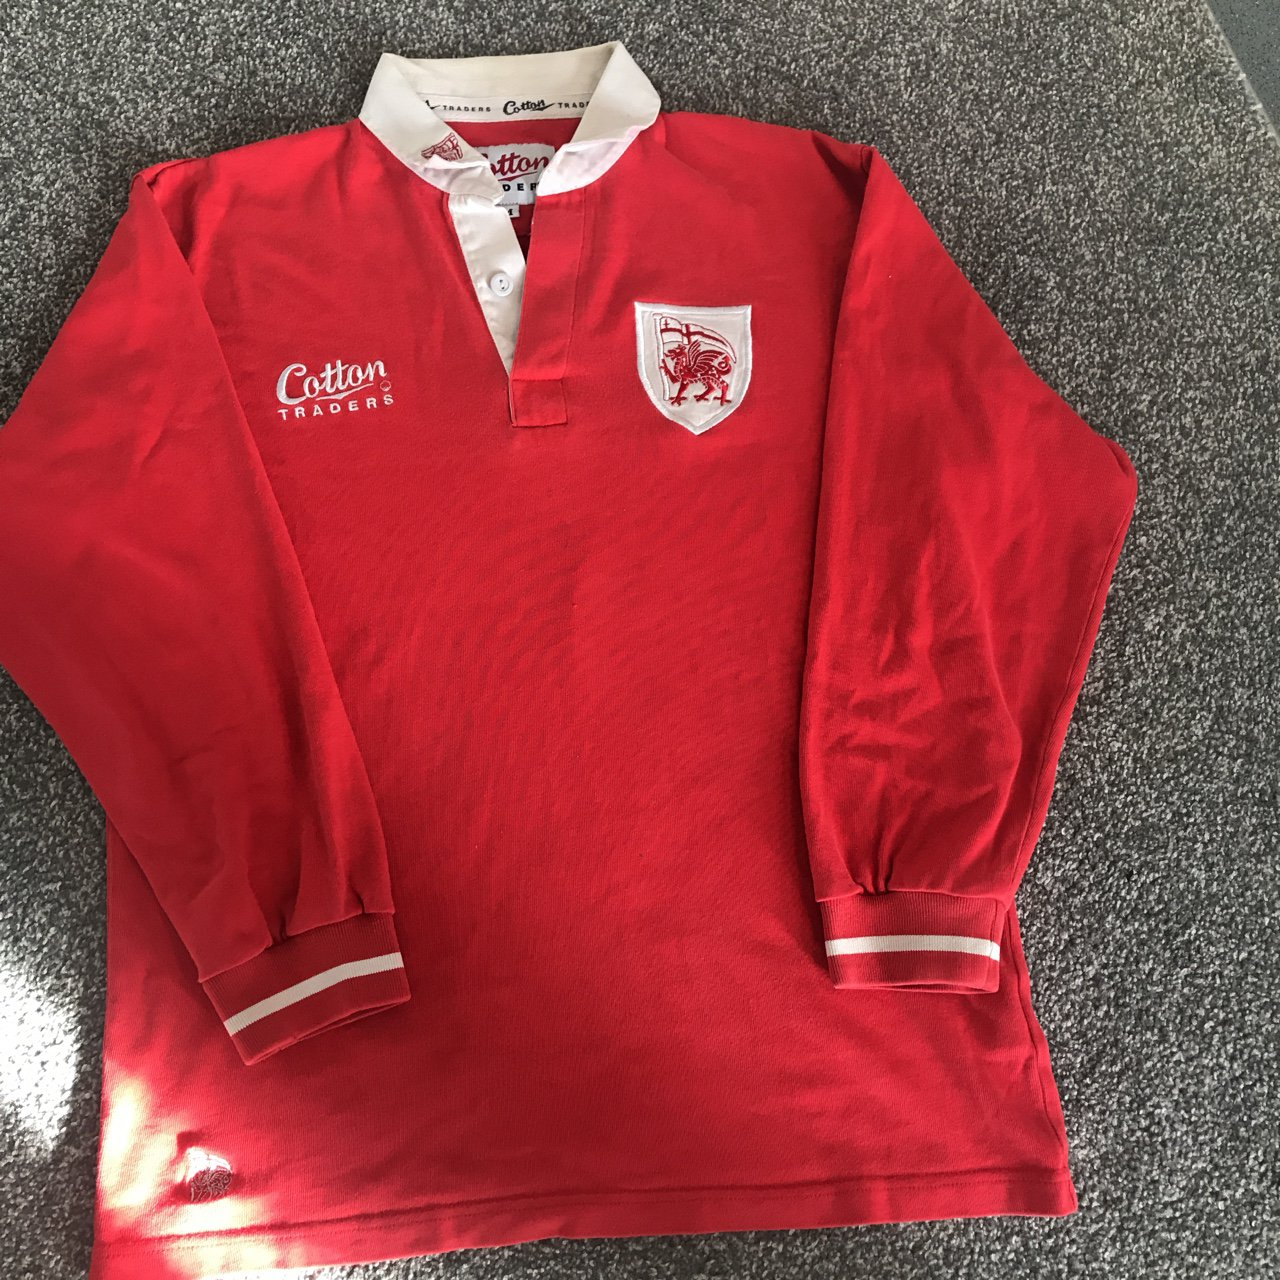 e6d273a3200 Cotton Traders Wales Rugby Shirts | Top Mode Depot